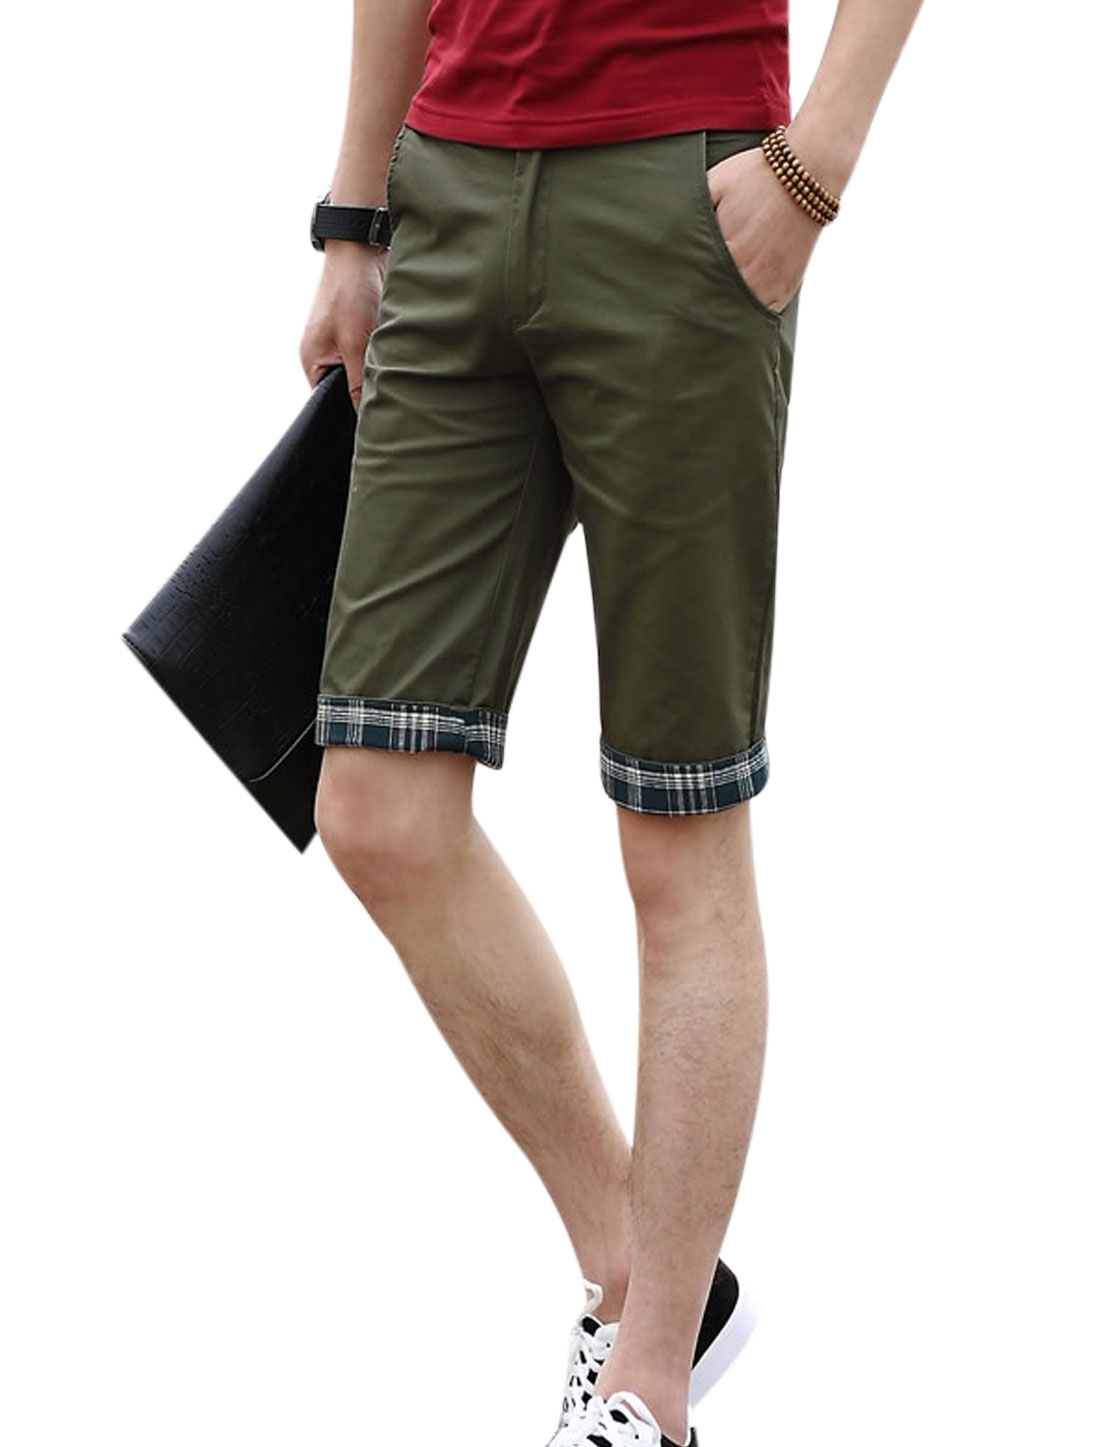 Men Mid Rise Zip Fly Pockets Slim Fit Short Shorts Army Green W32